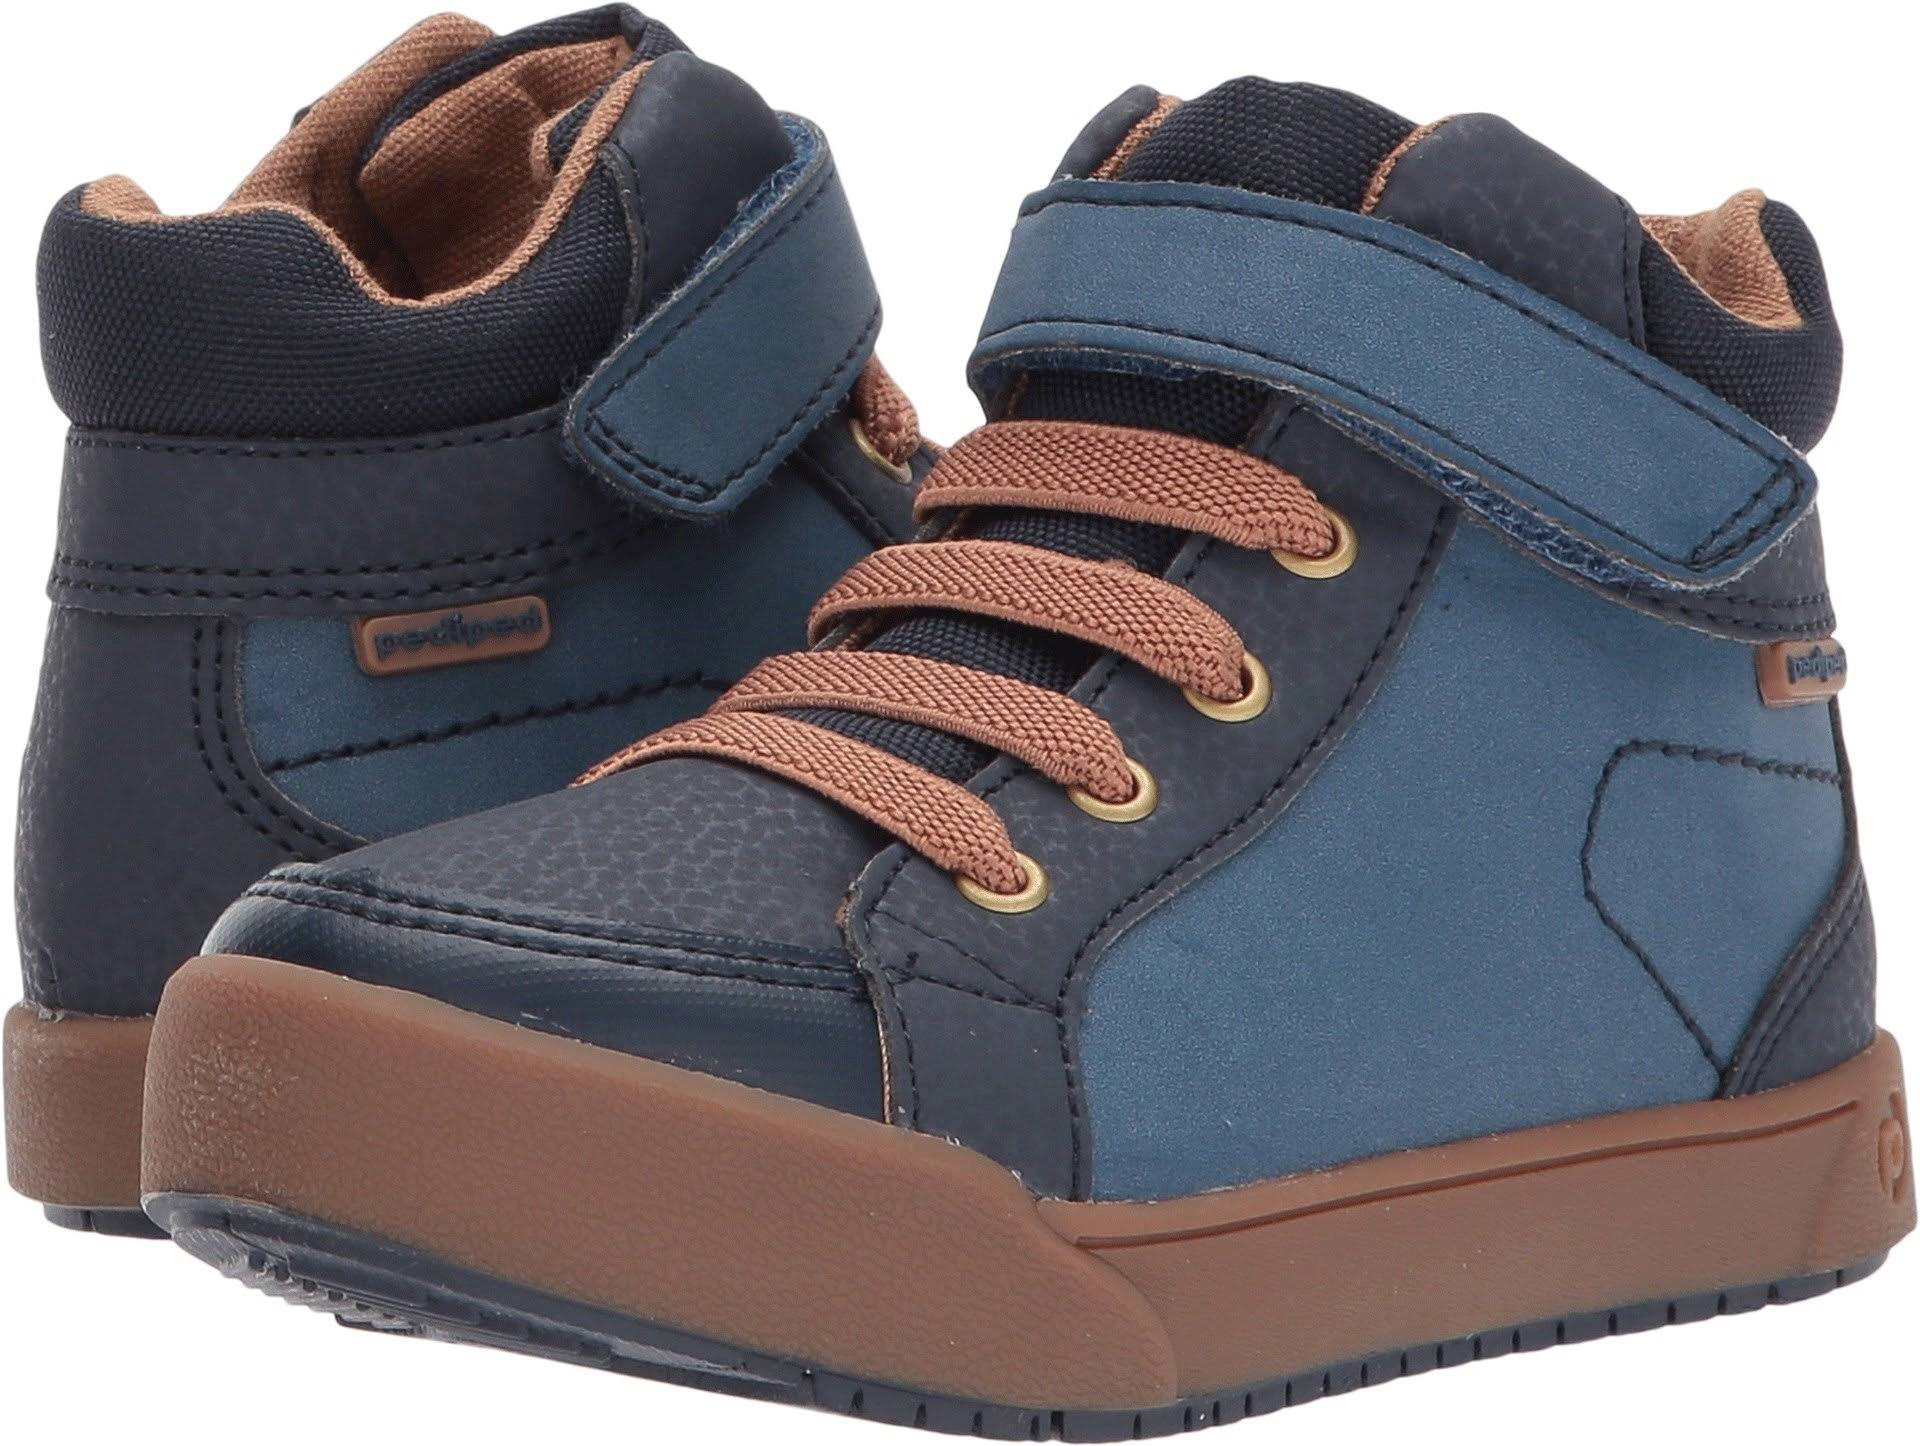 pediped Logan Flex (Toddler/Little Kid/Big Kid) (Navy) Kid's Shoes